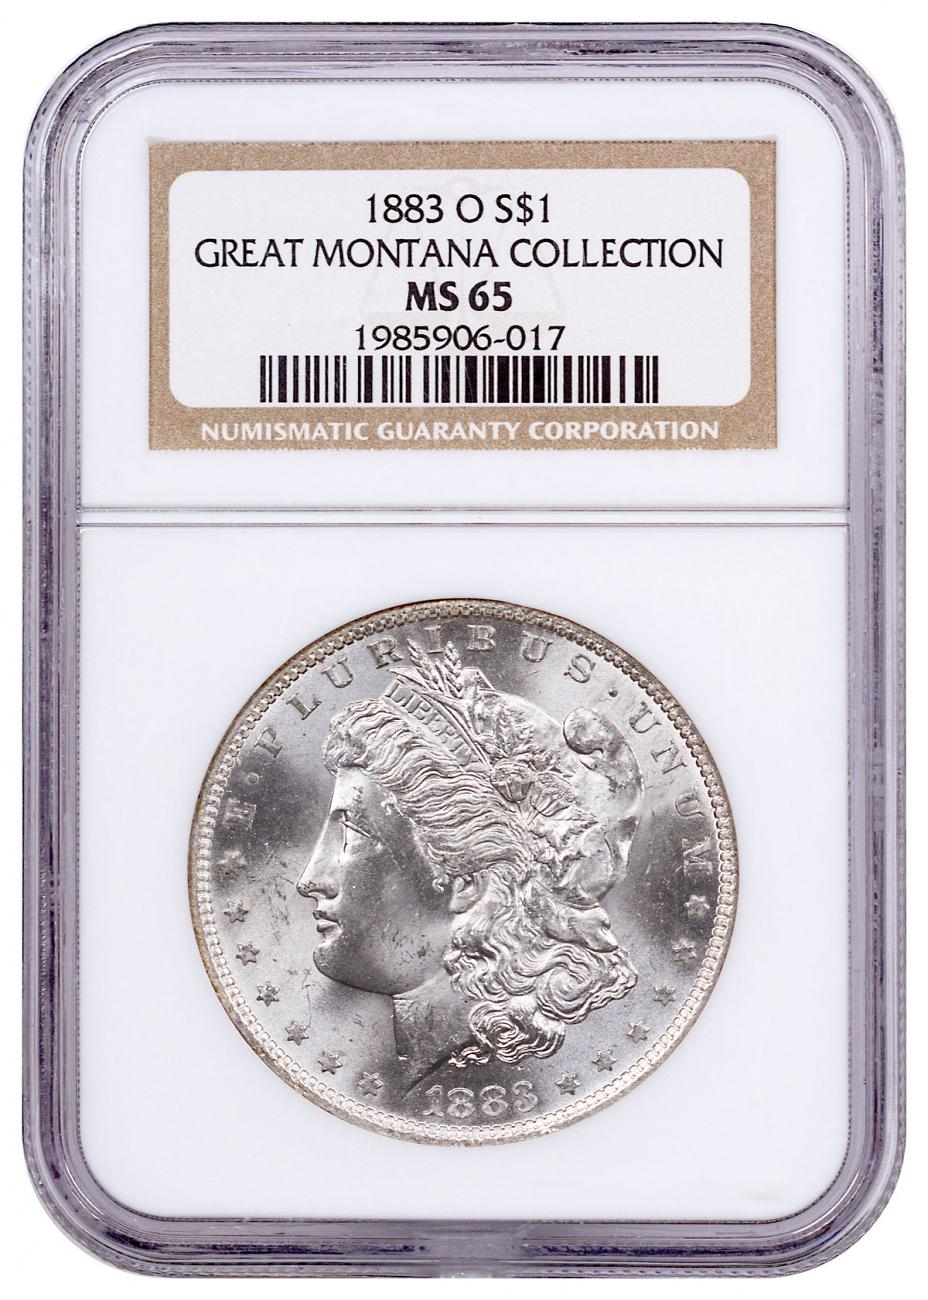 1883-O Morgan Silver Dollar From the Great Montana Collection NGC MS65